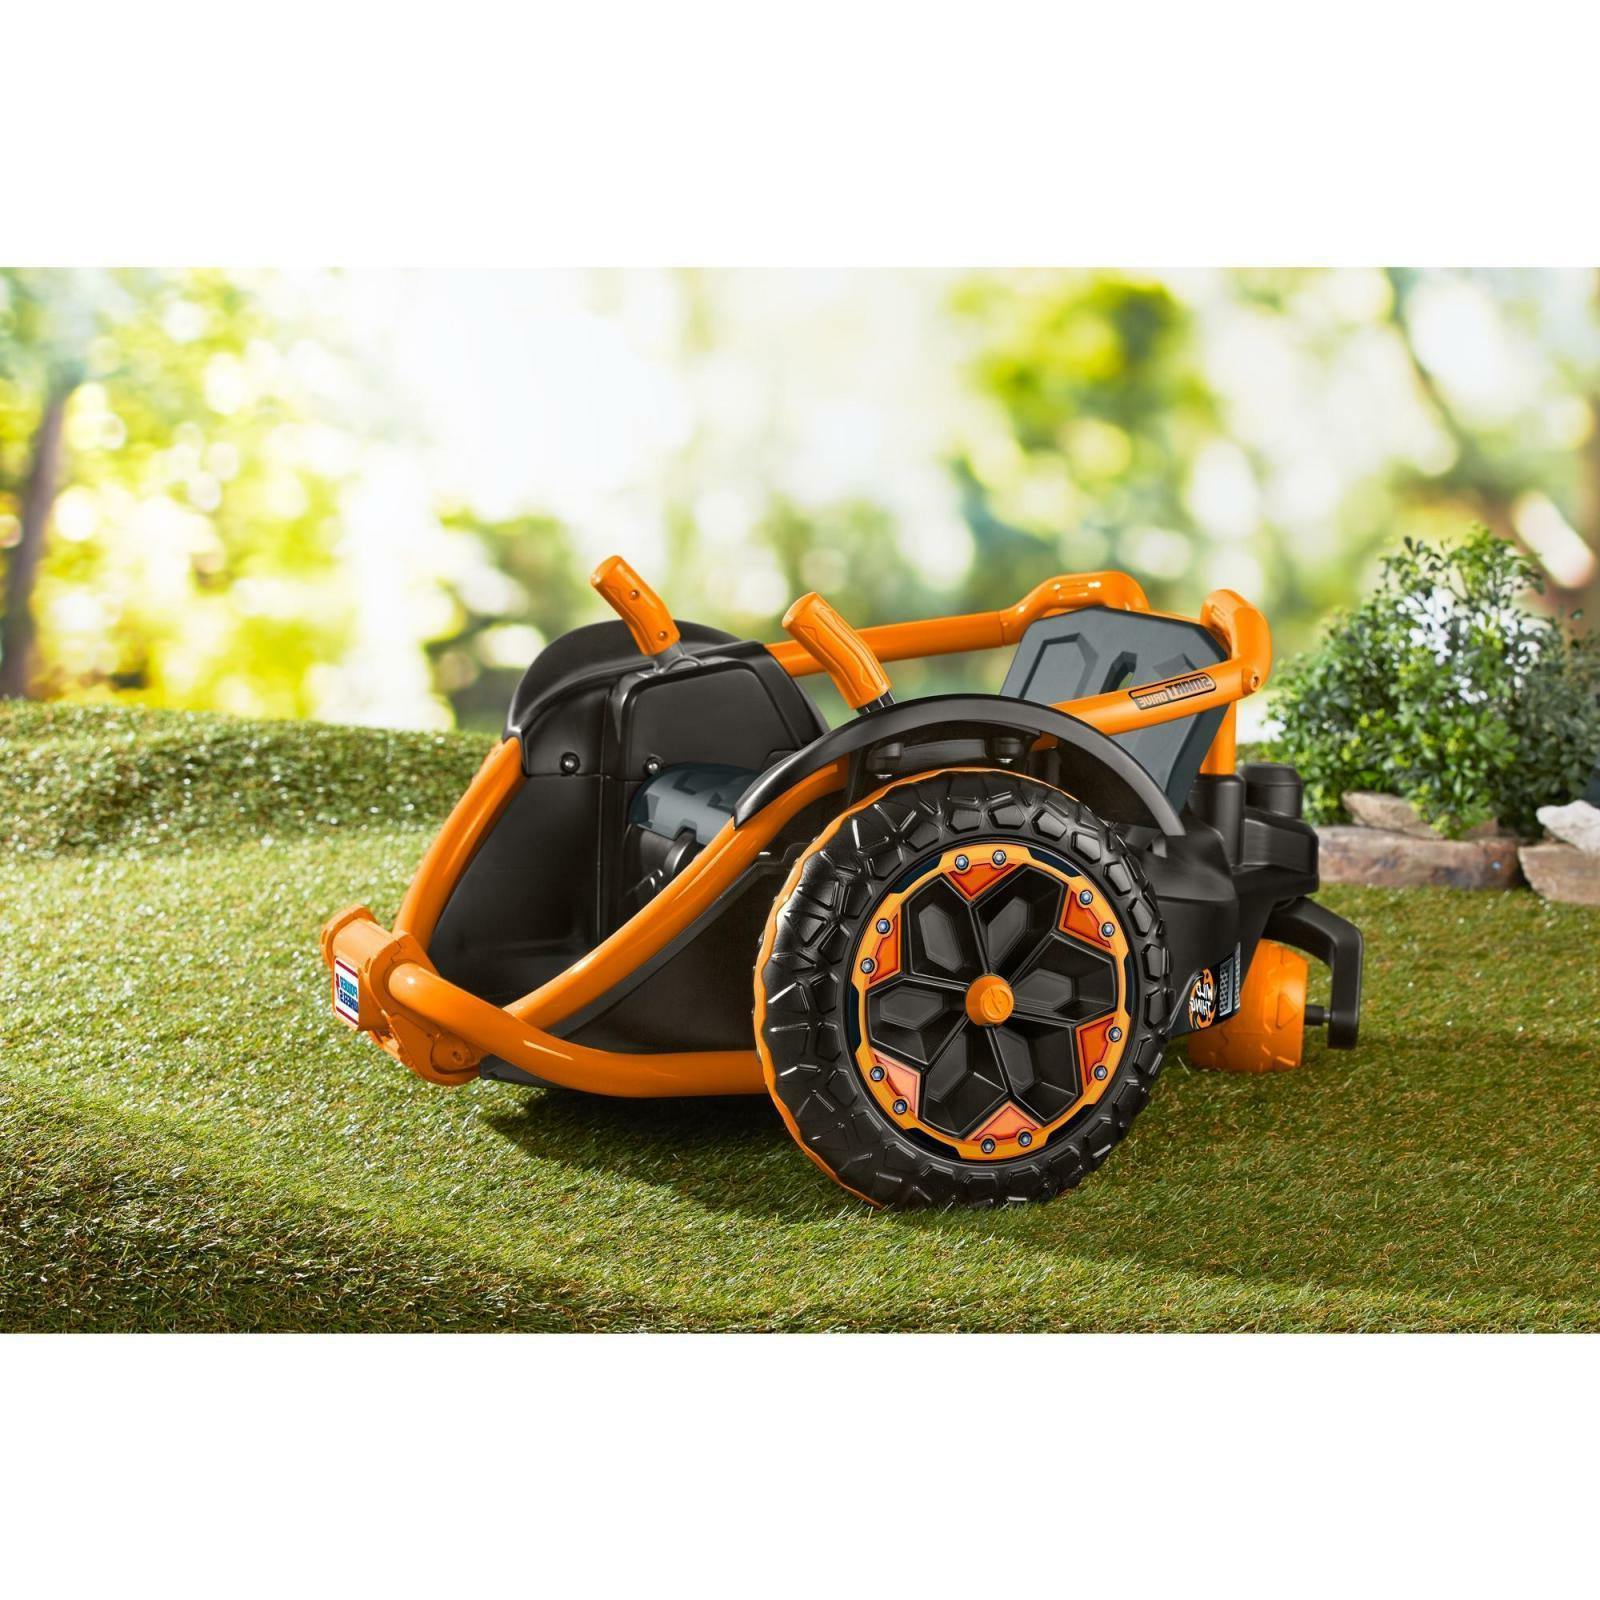 Power Wild 12 Volt Battery Ride On Orange